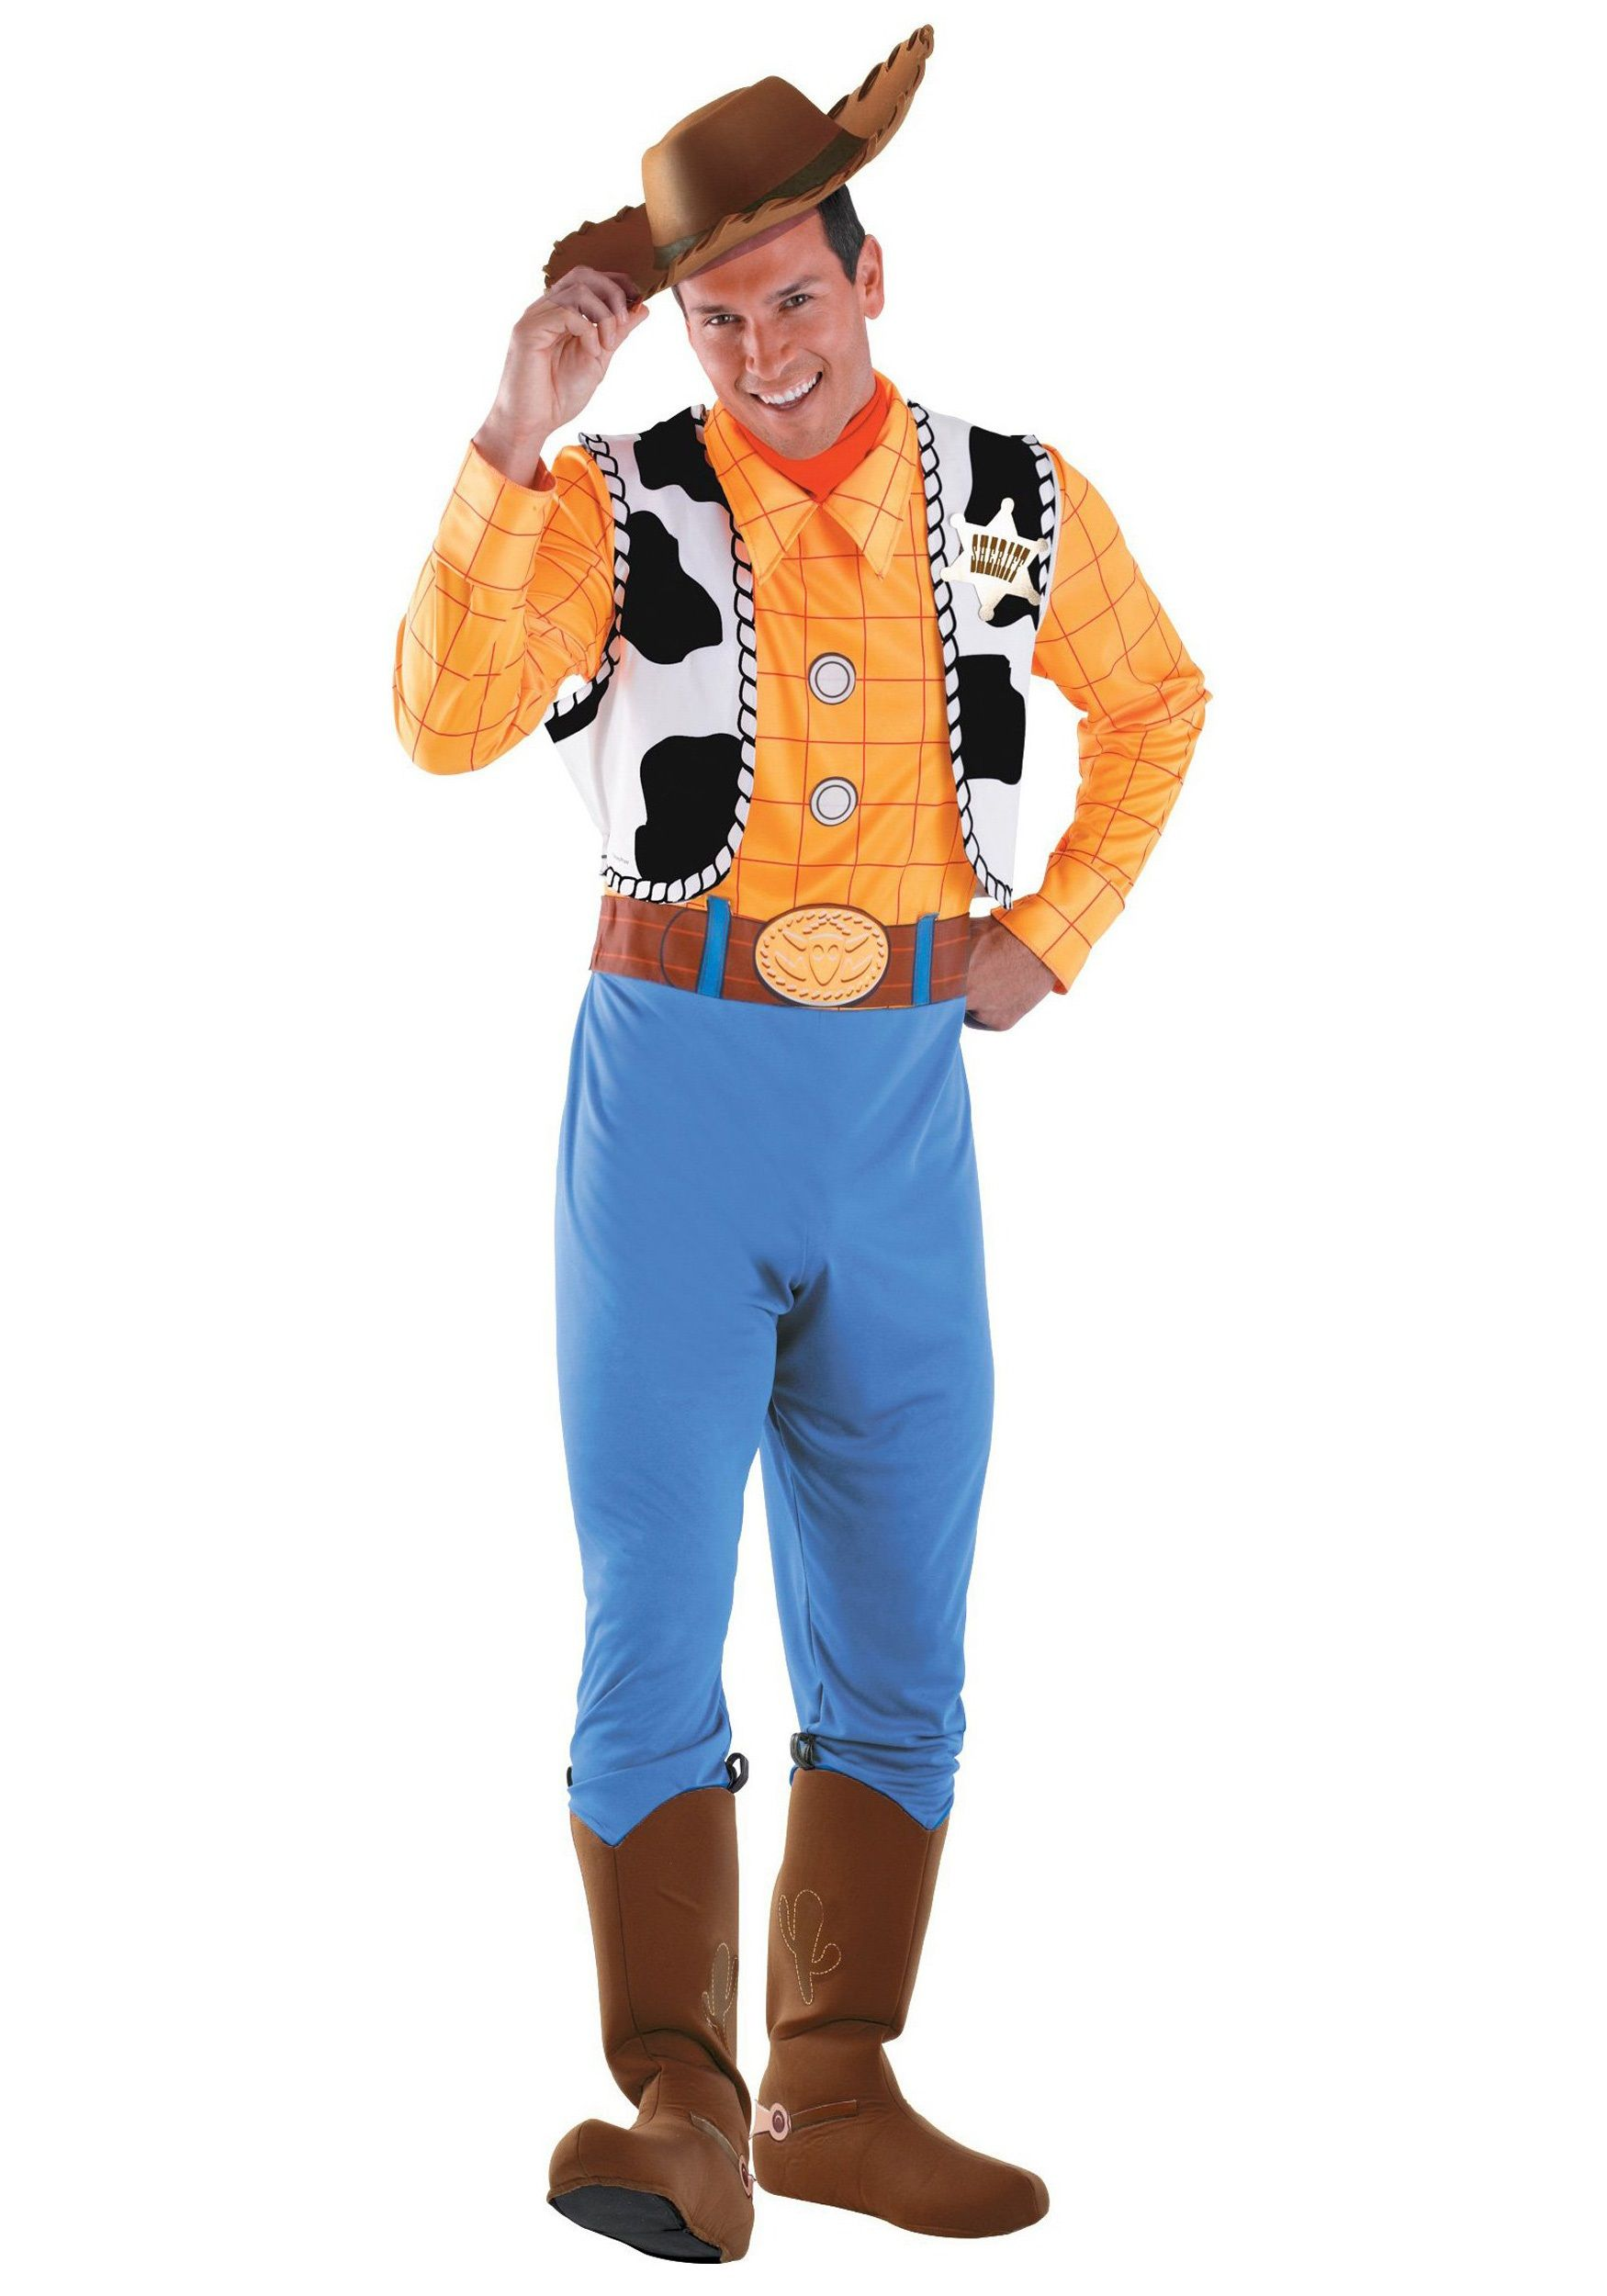 Toy Story Woody Costume Adult make an impression this